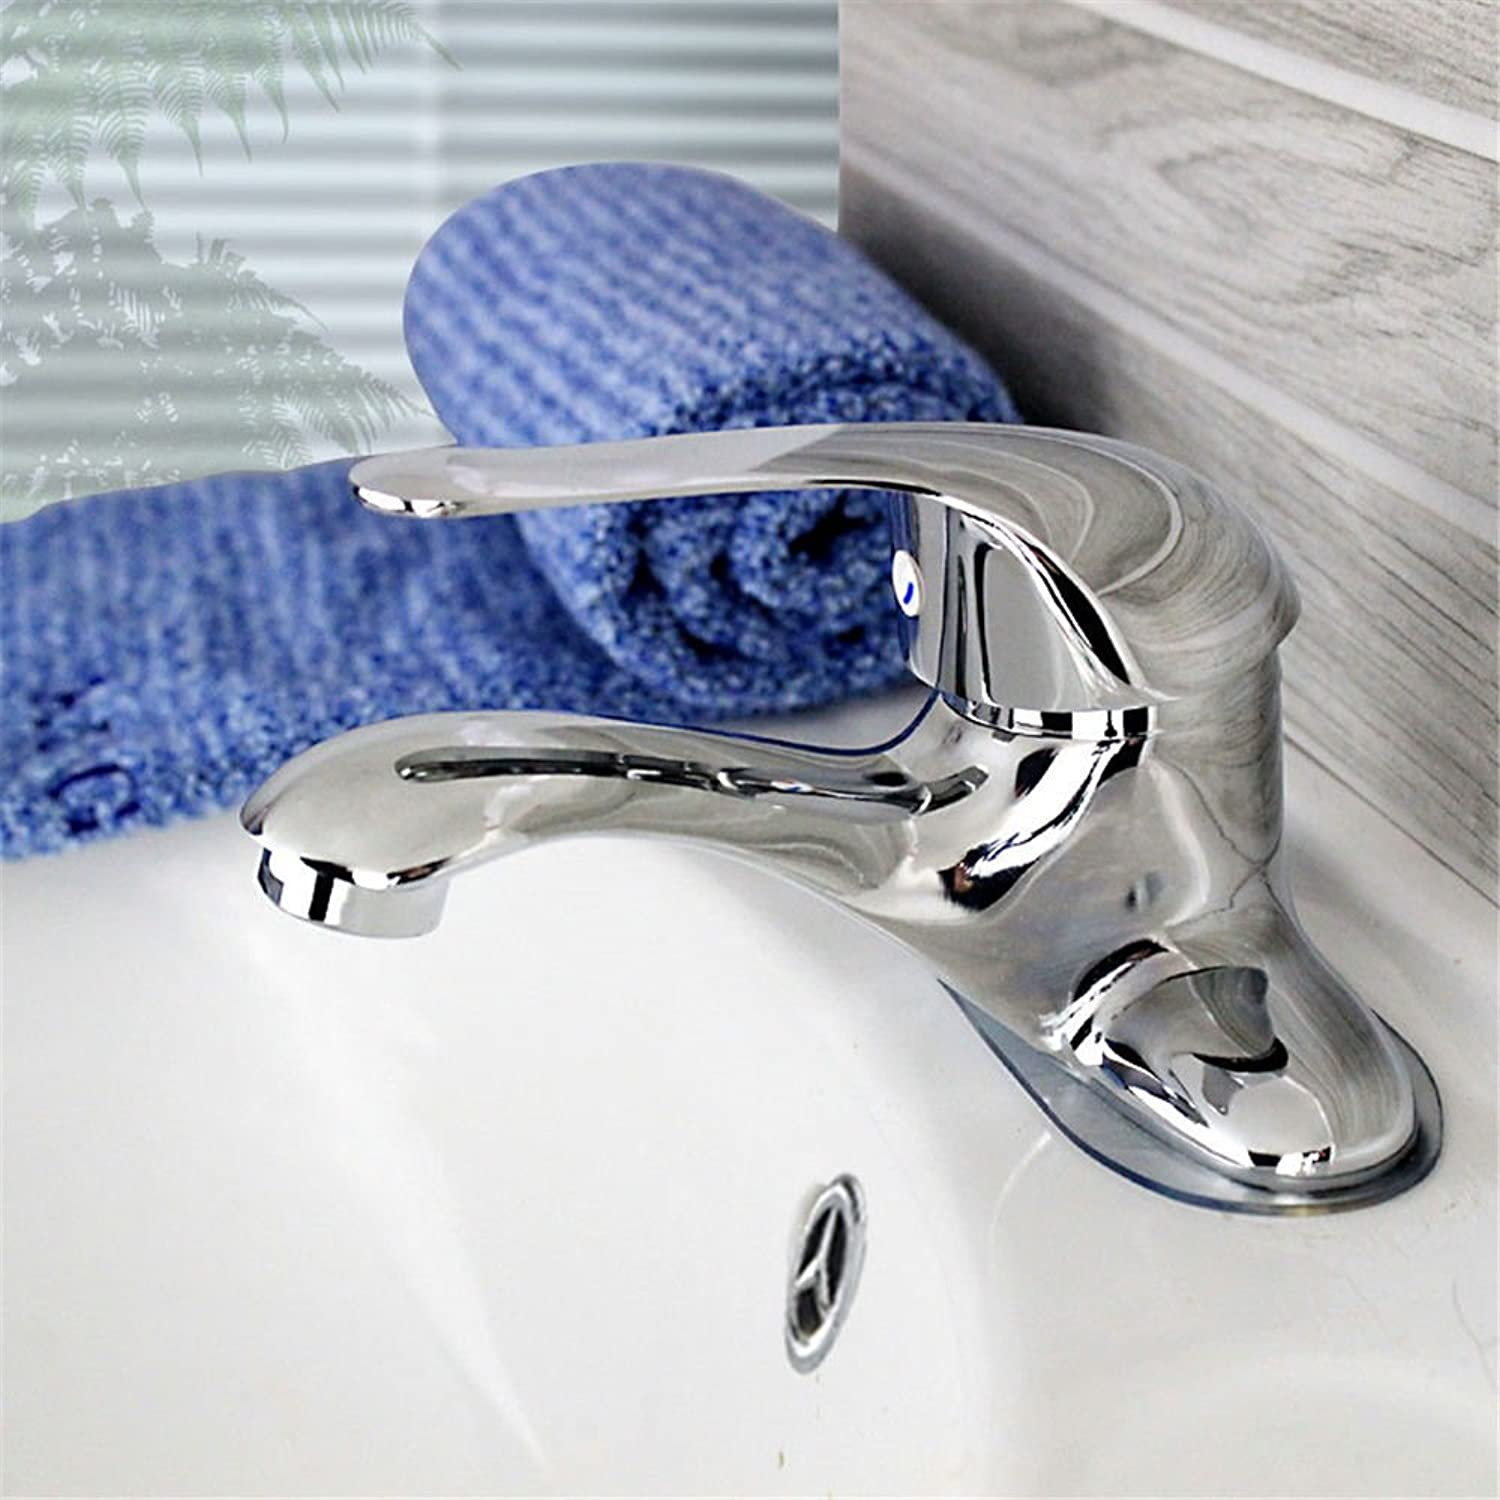 Hlluya Professional Sink Mixer Tap Kitchen Faucet The copper bathroom sink basins pool basin three hole-hole cold-hot water tap two holes